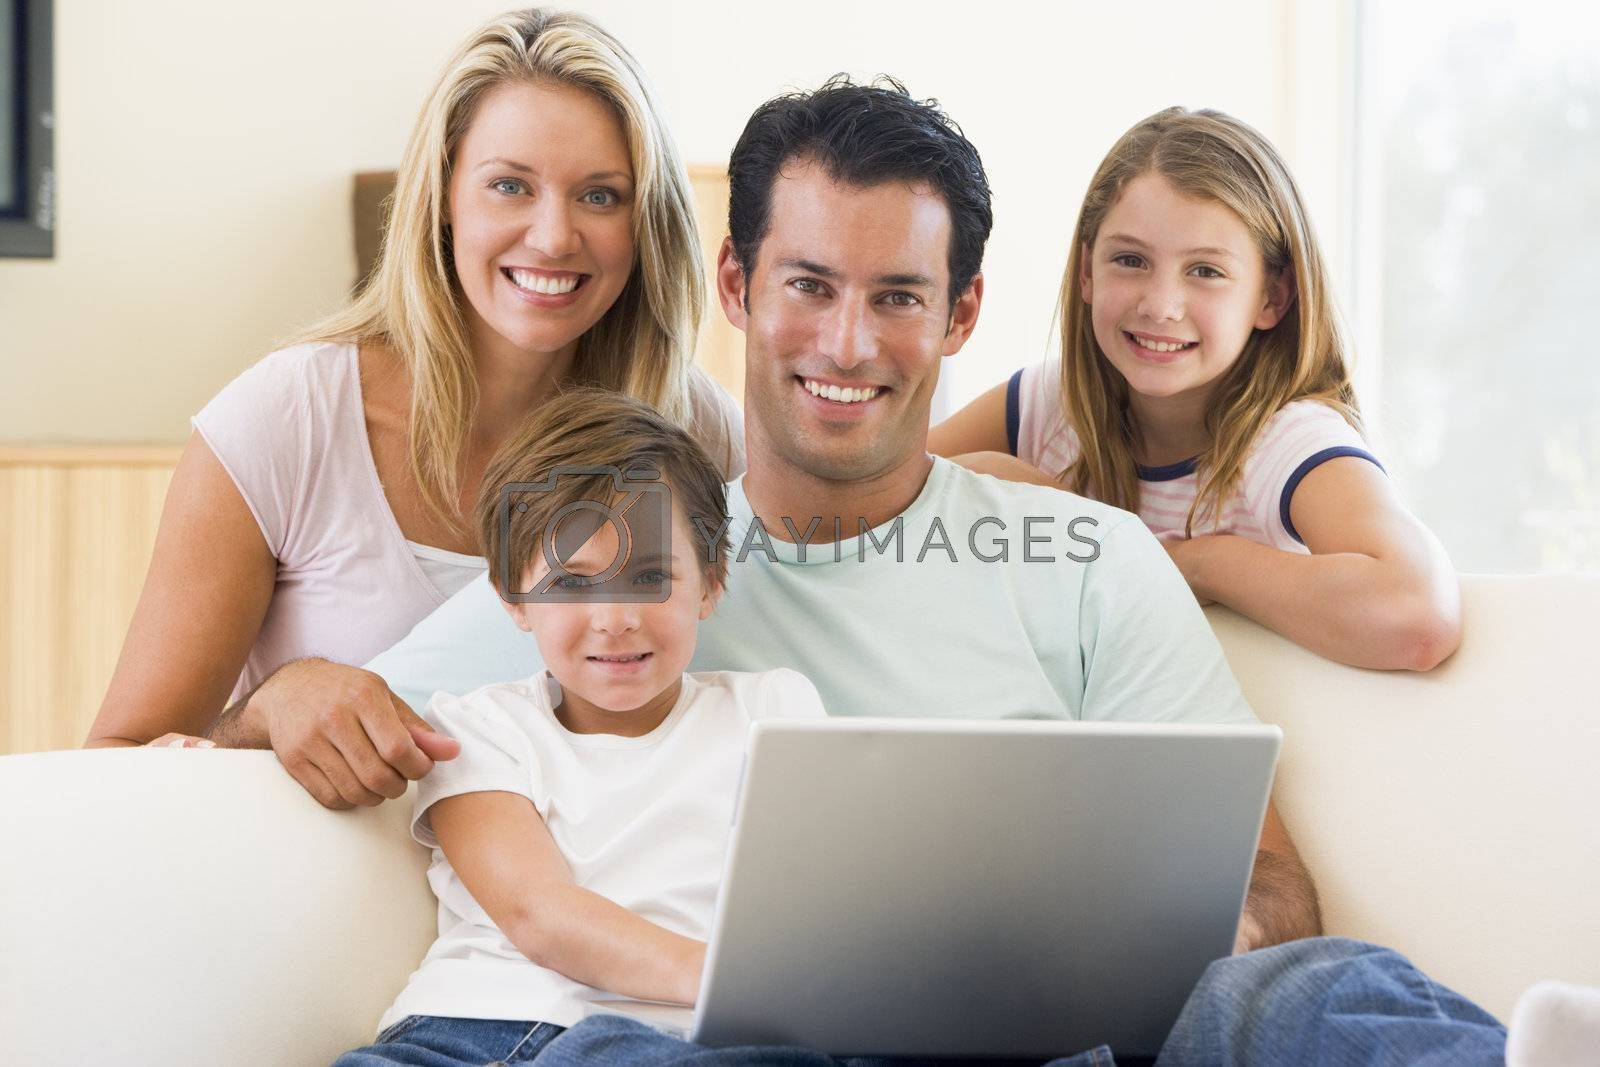 Family in living room with laptop smiling by MonkeyBusiness